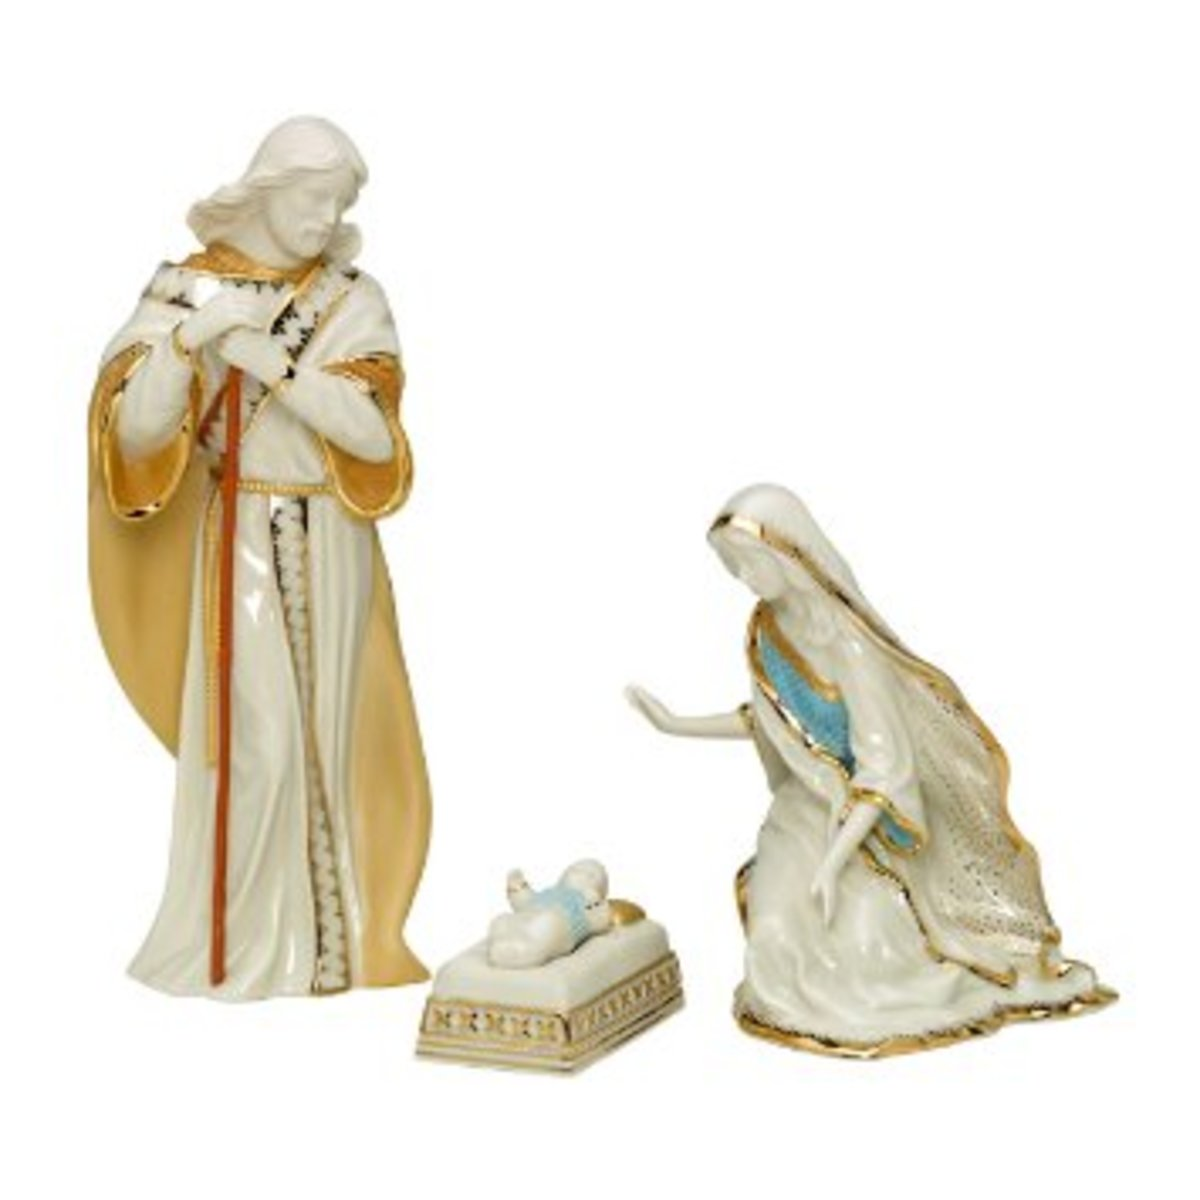 nativity set by Lenox with Mary, Joseph and baby Jesus in white porcelain with gold